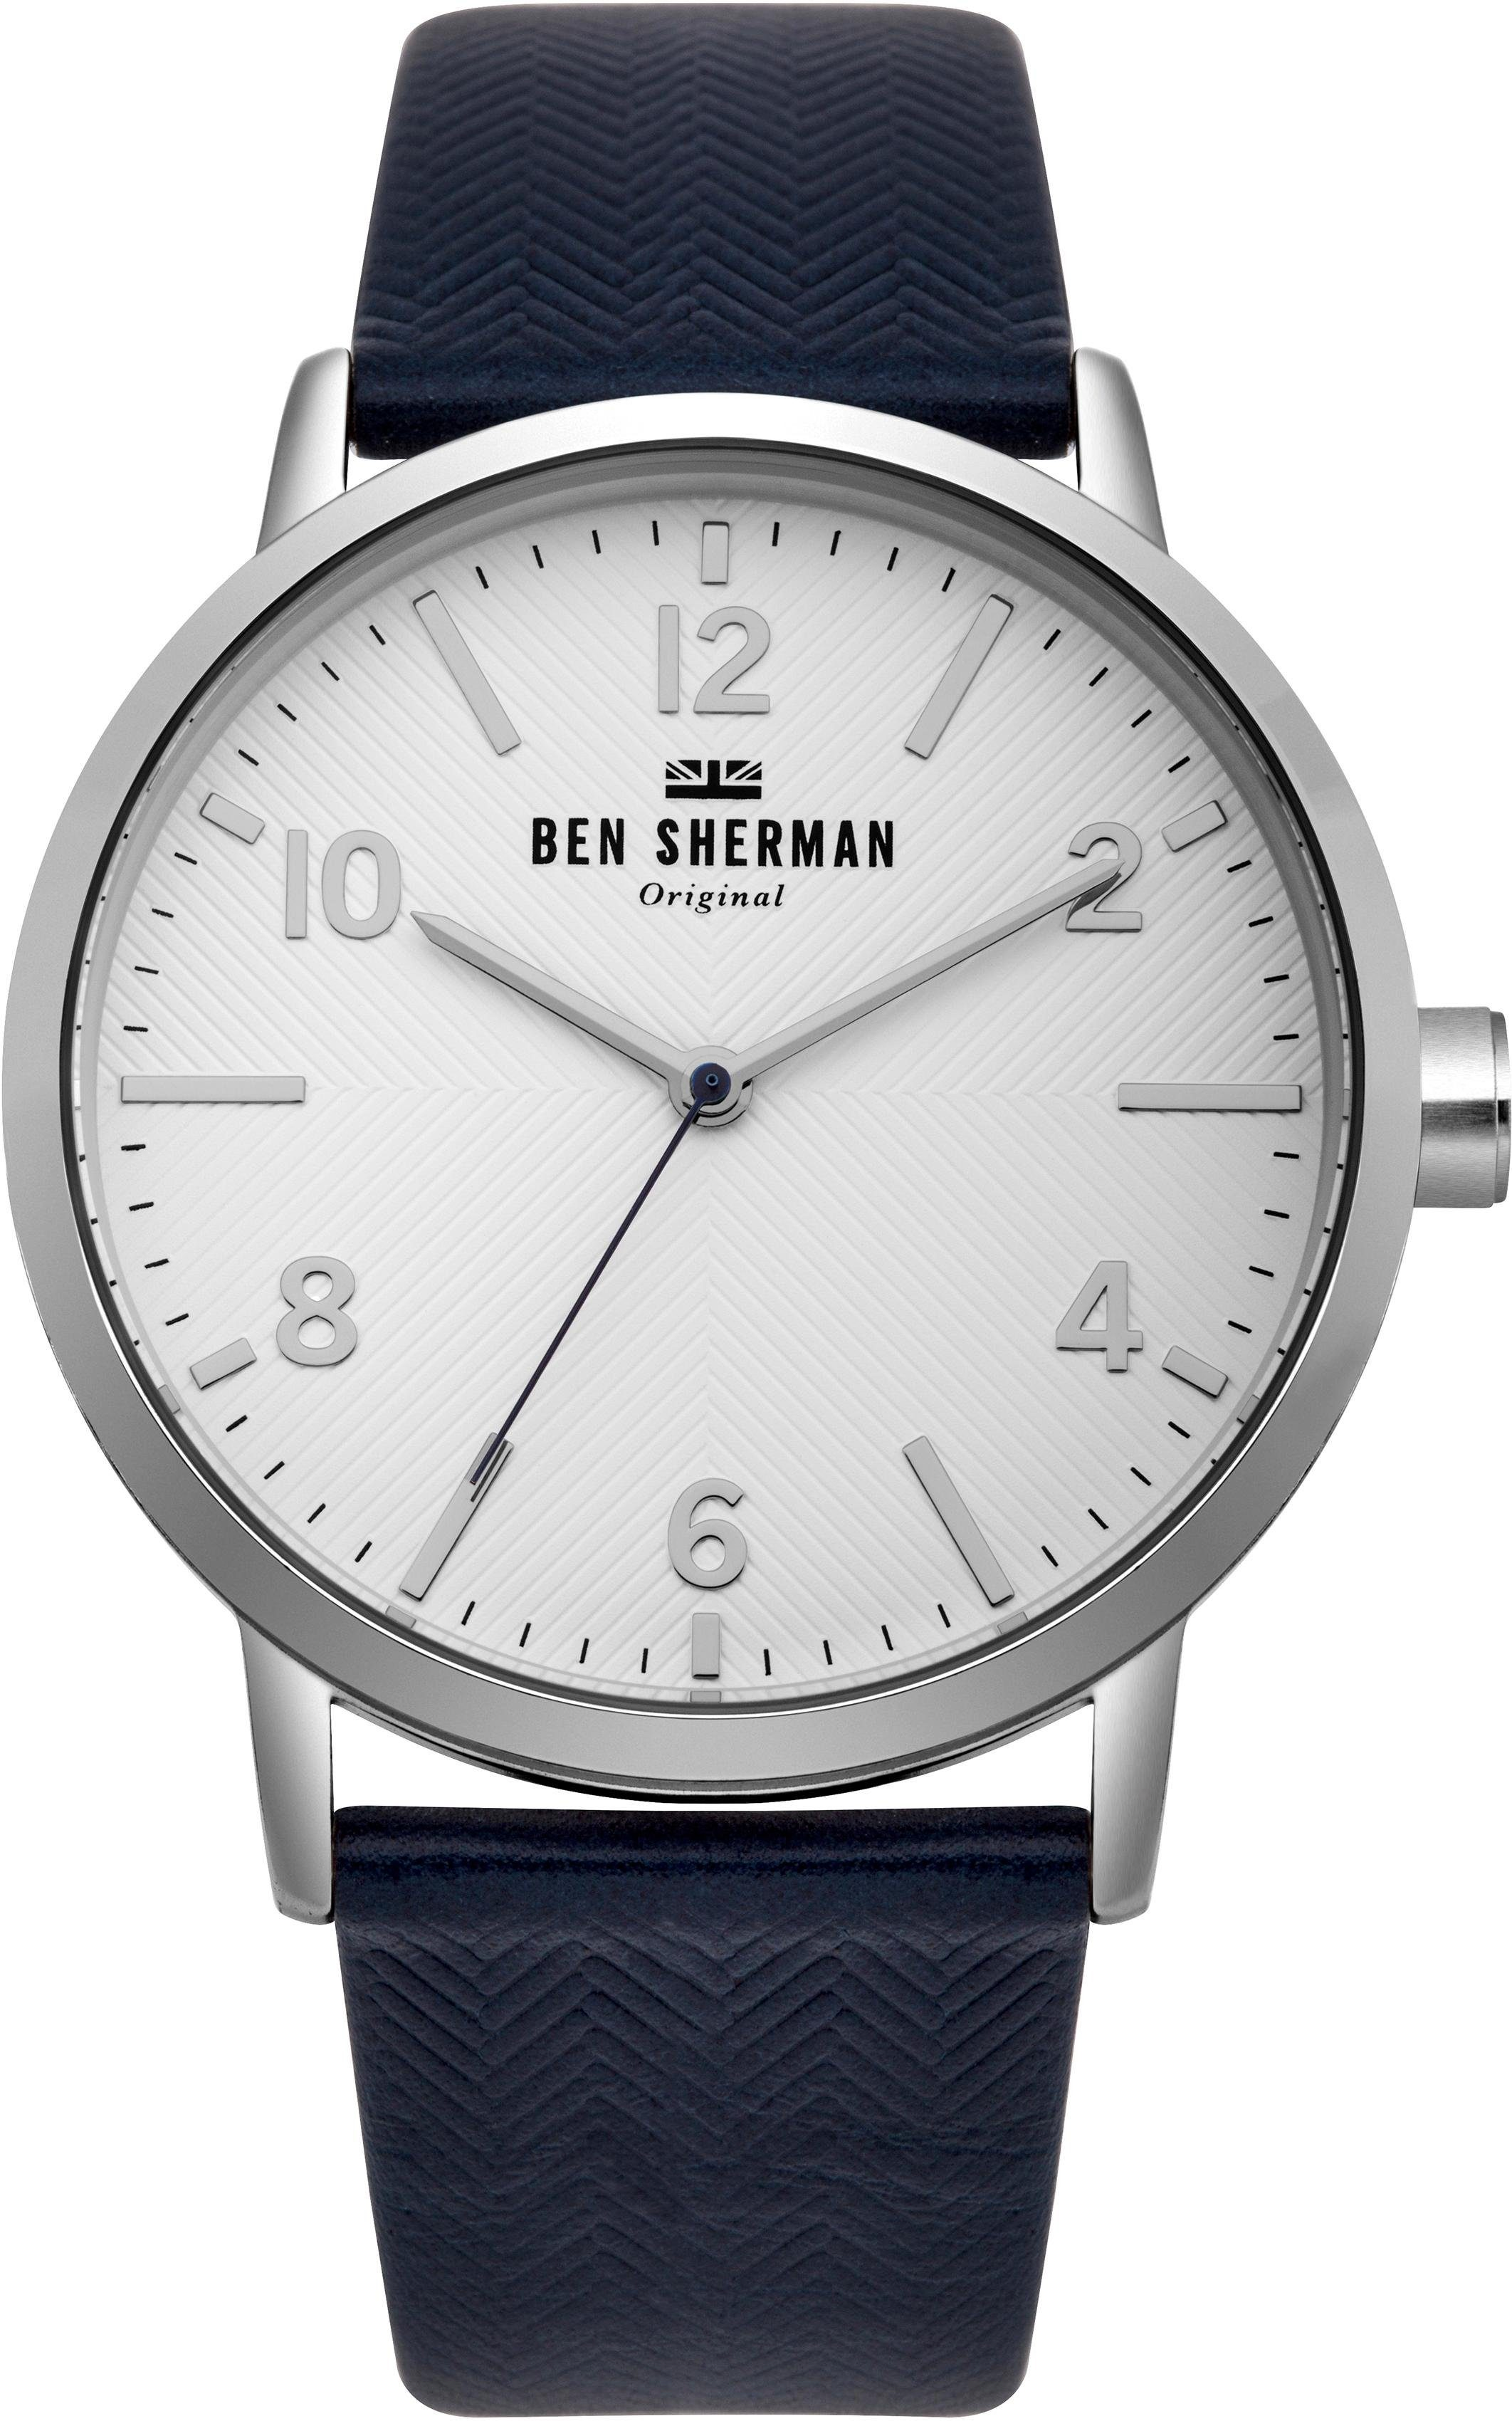 Ben Sherman Quarzuhr »Big Portobello Herringbone, WB070UB«